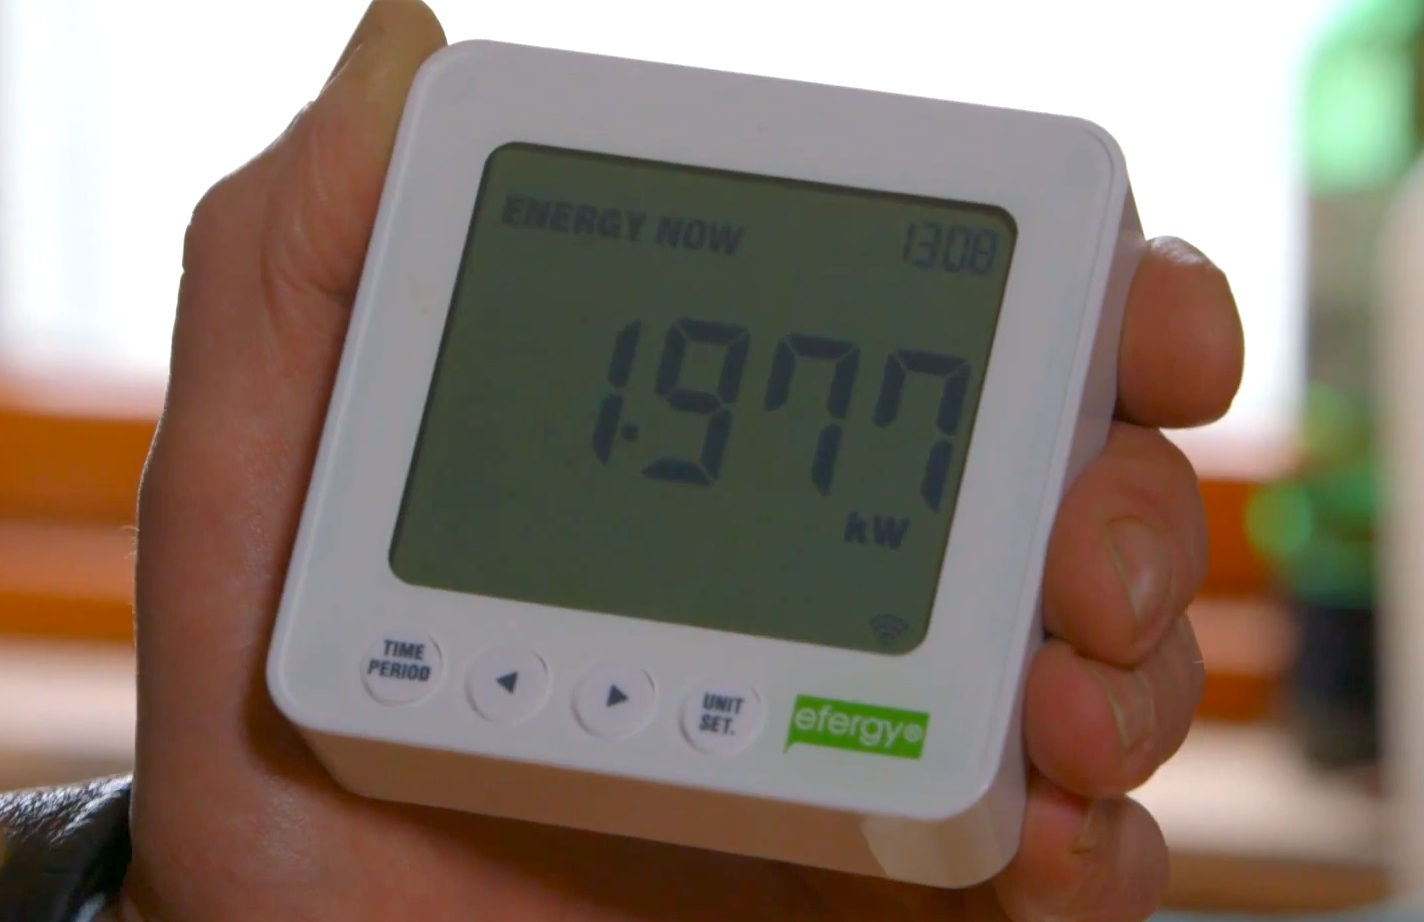 Picture 3 – User  information display of the  energy management  system